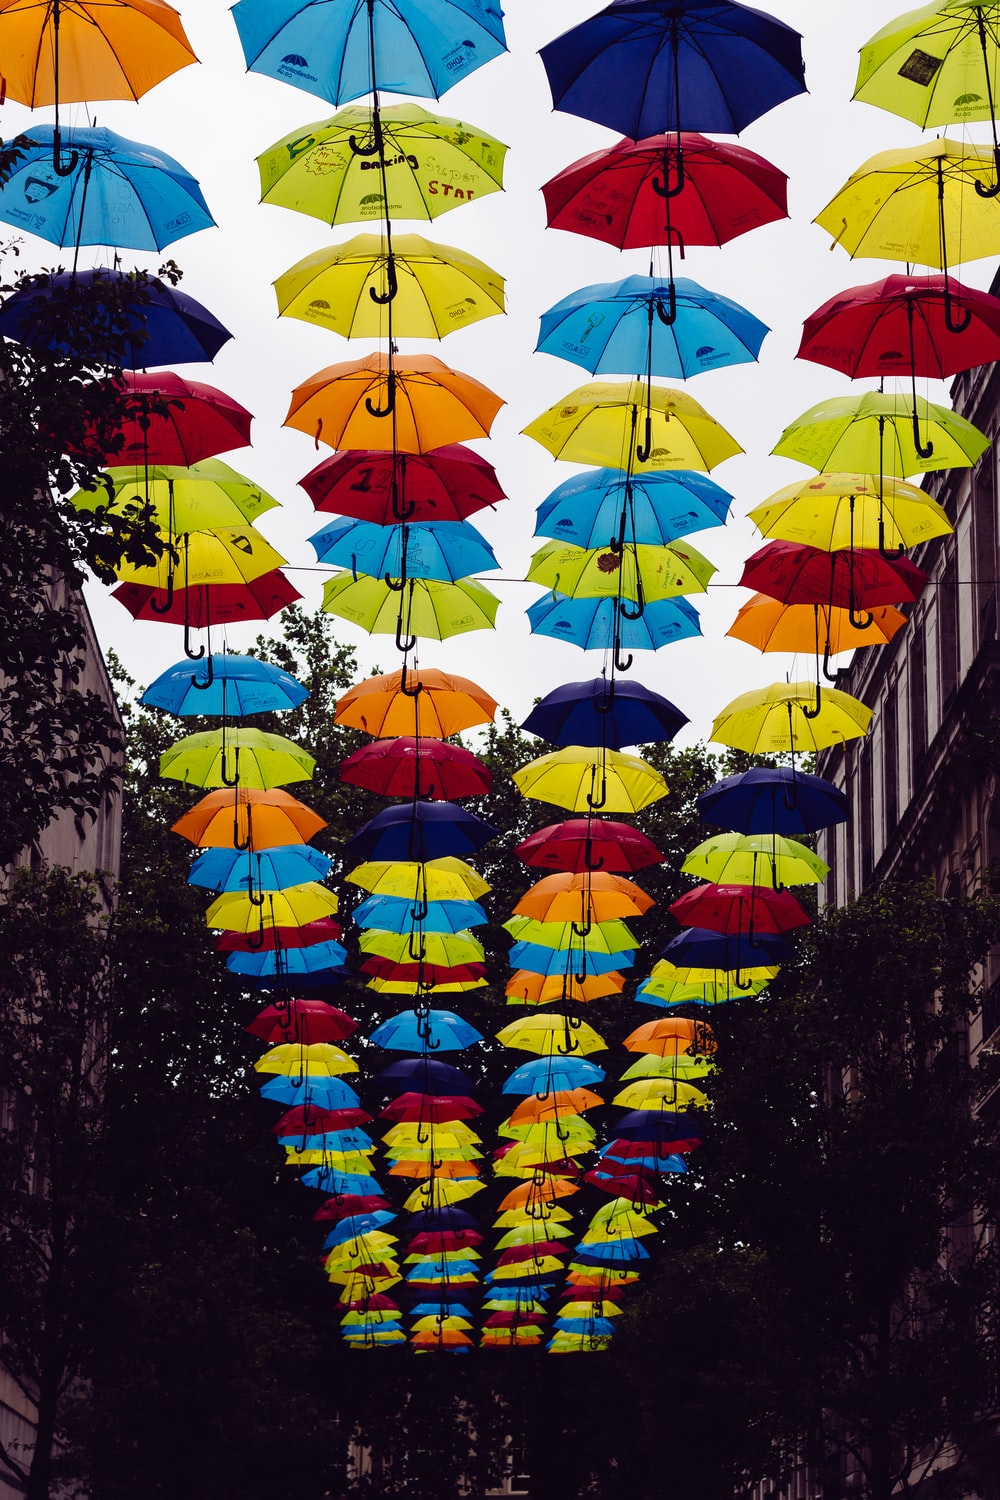 umbrellas hanged in between two white buildings at daytime